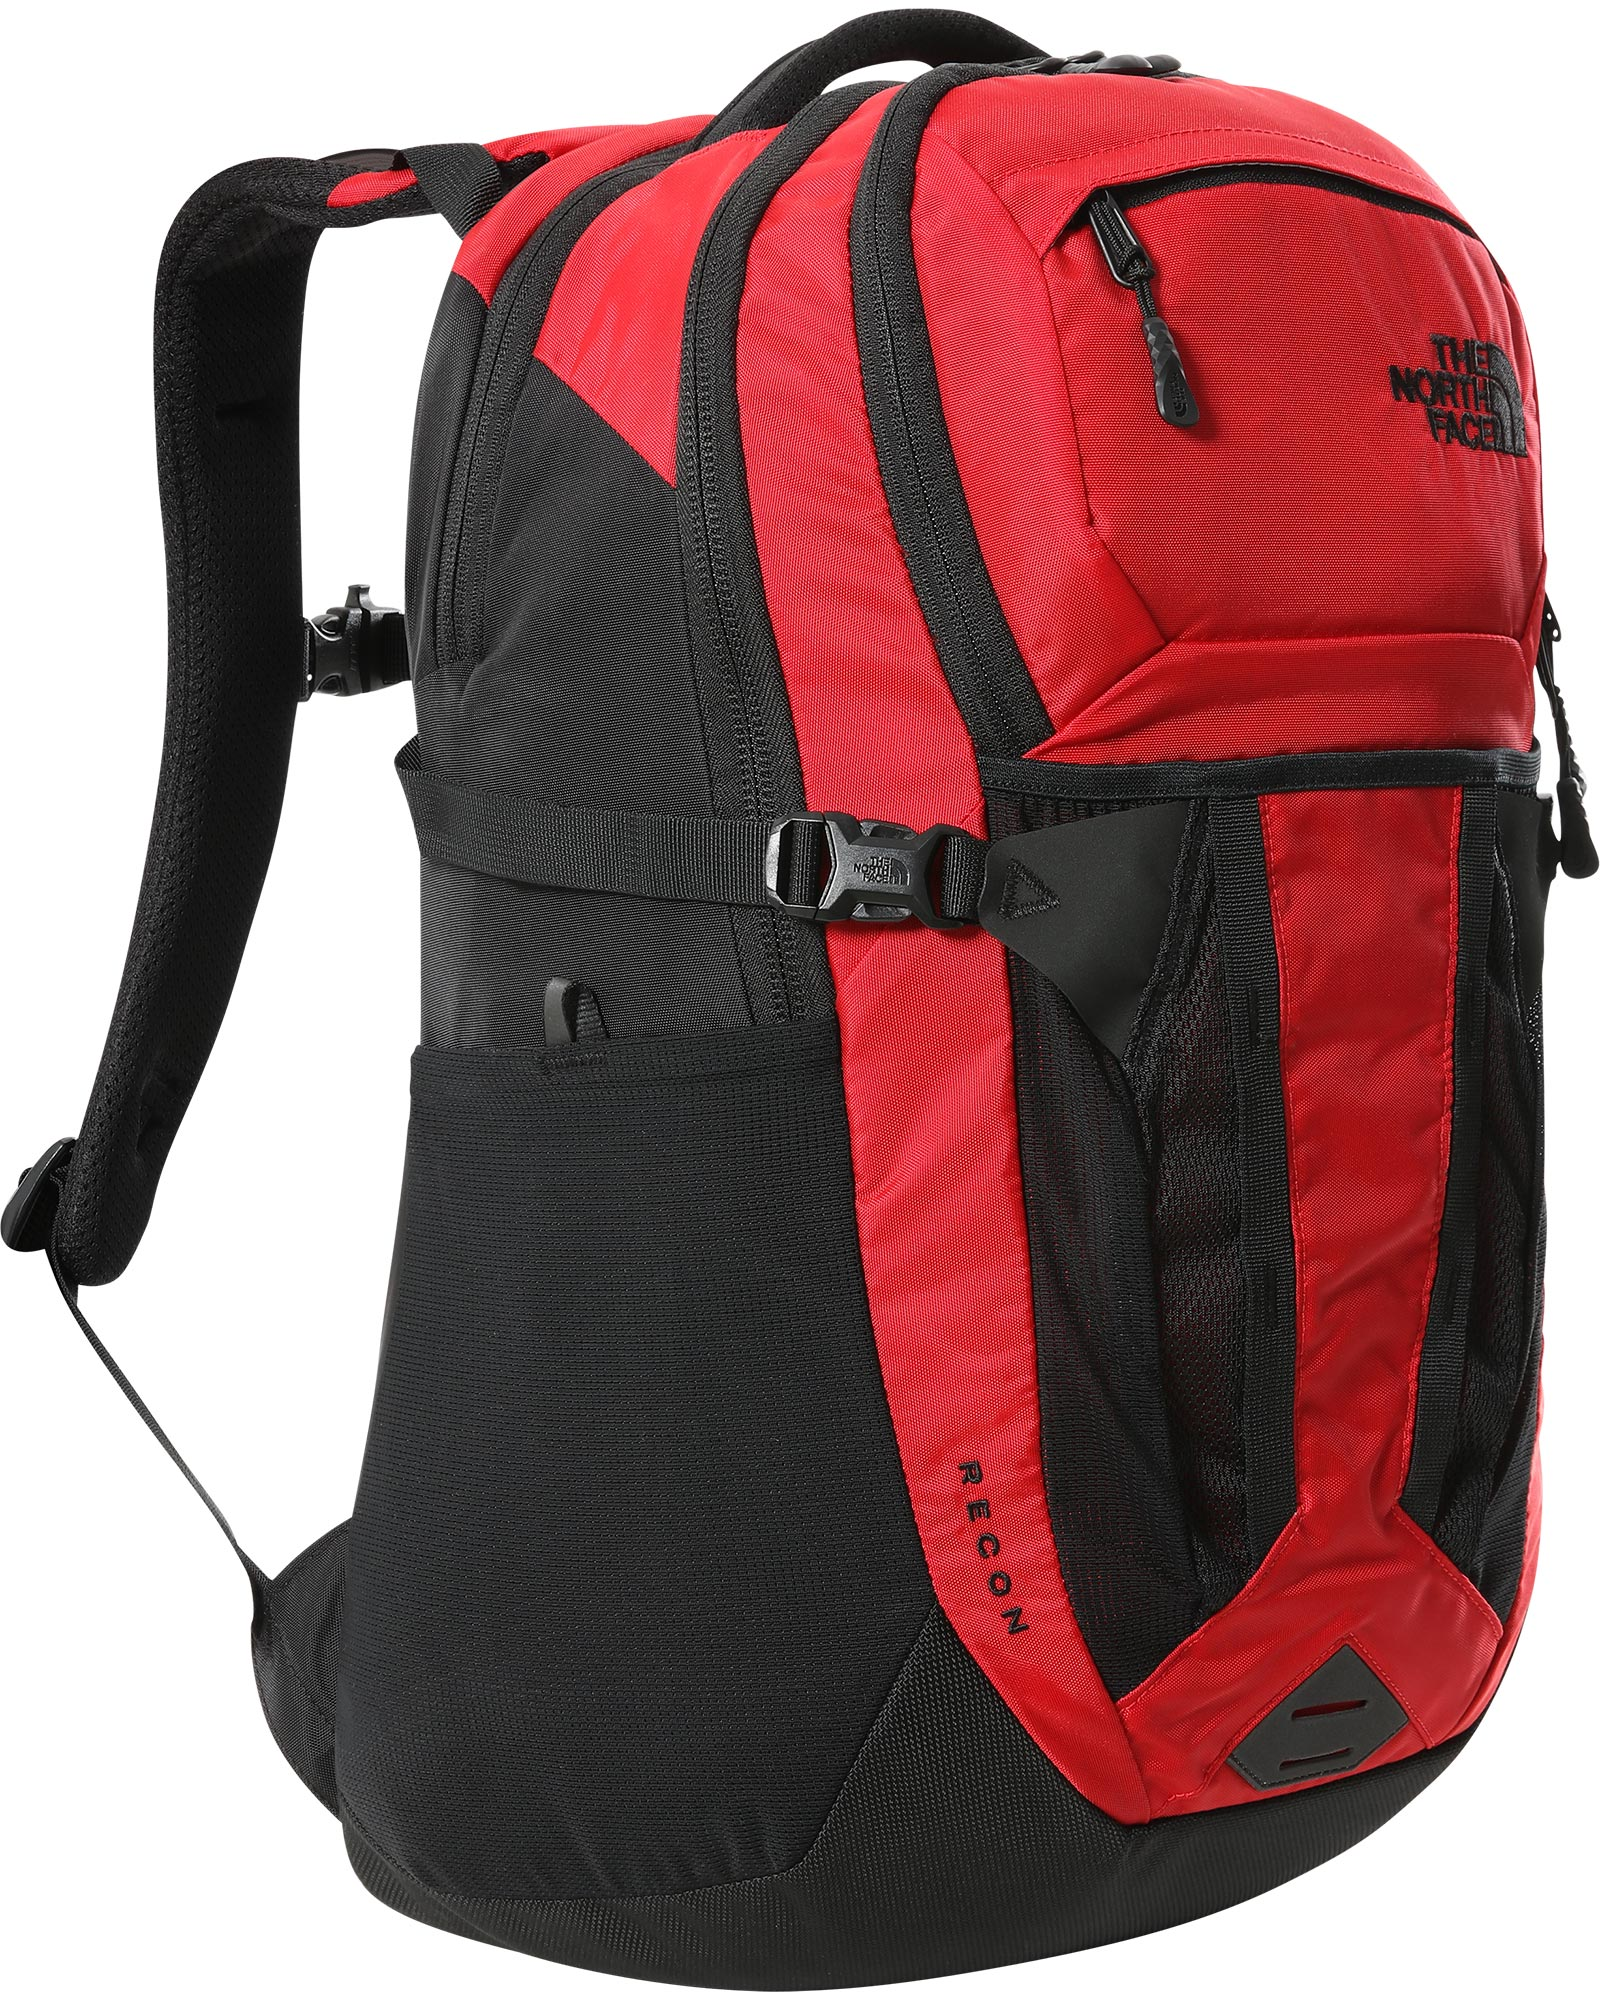 The North Face Recon Backpack 0